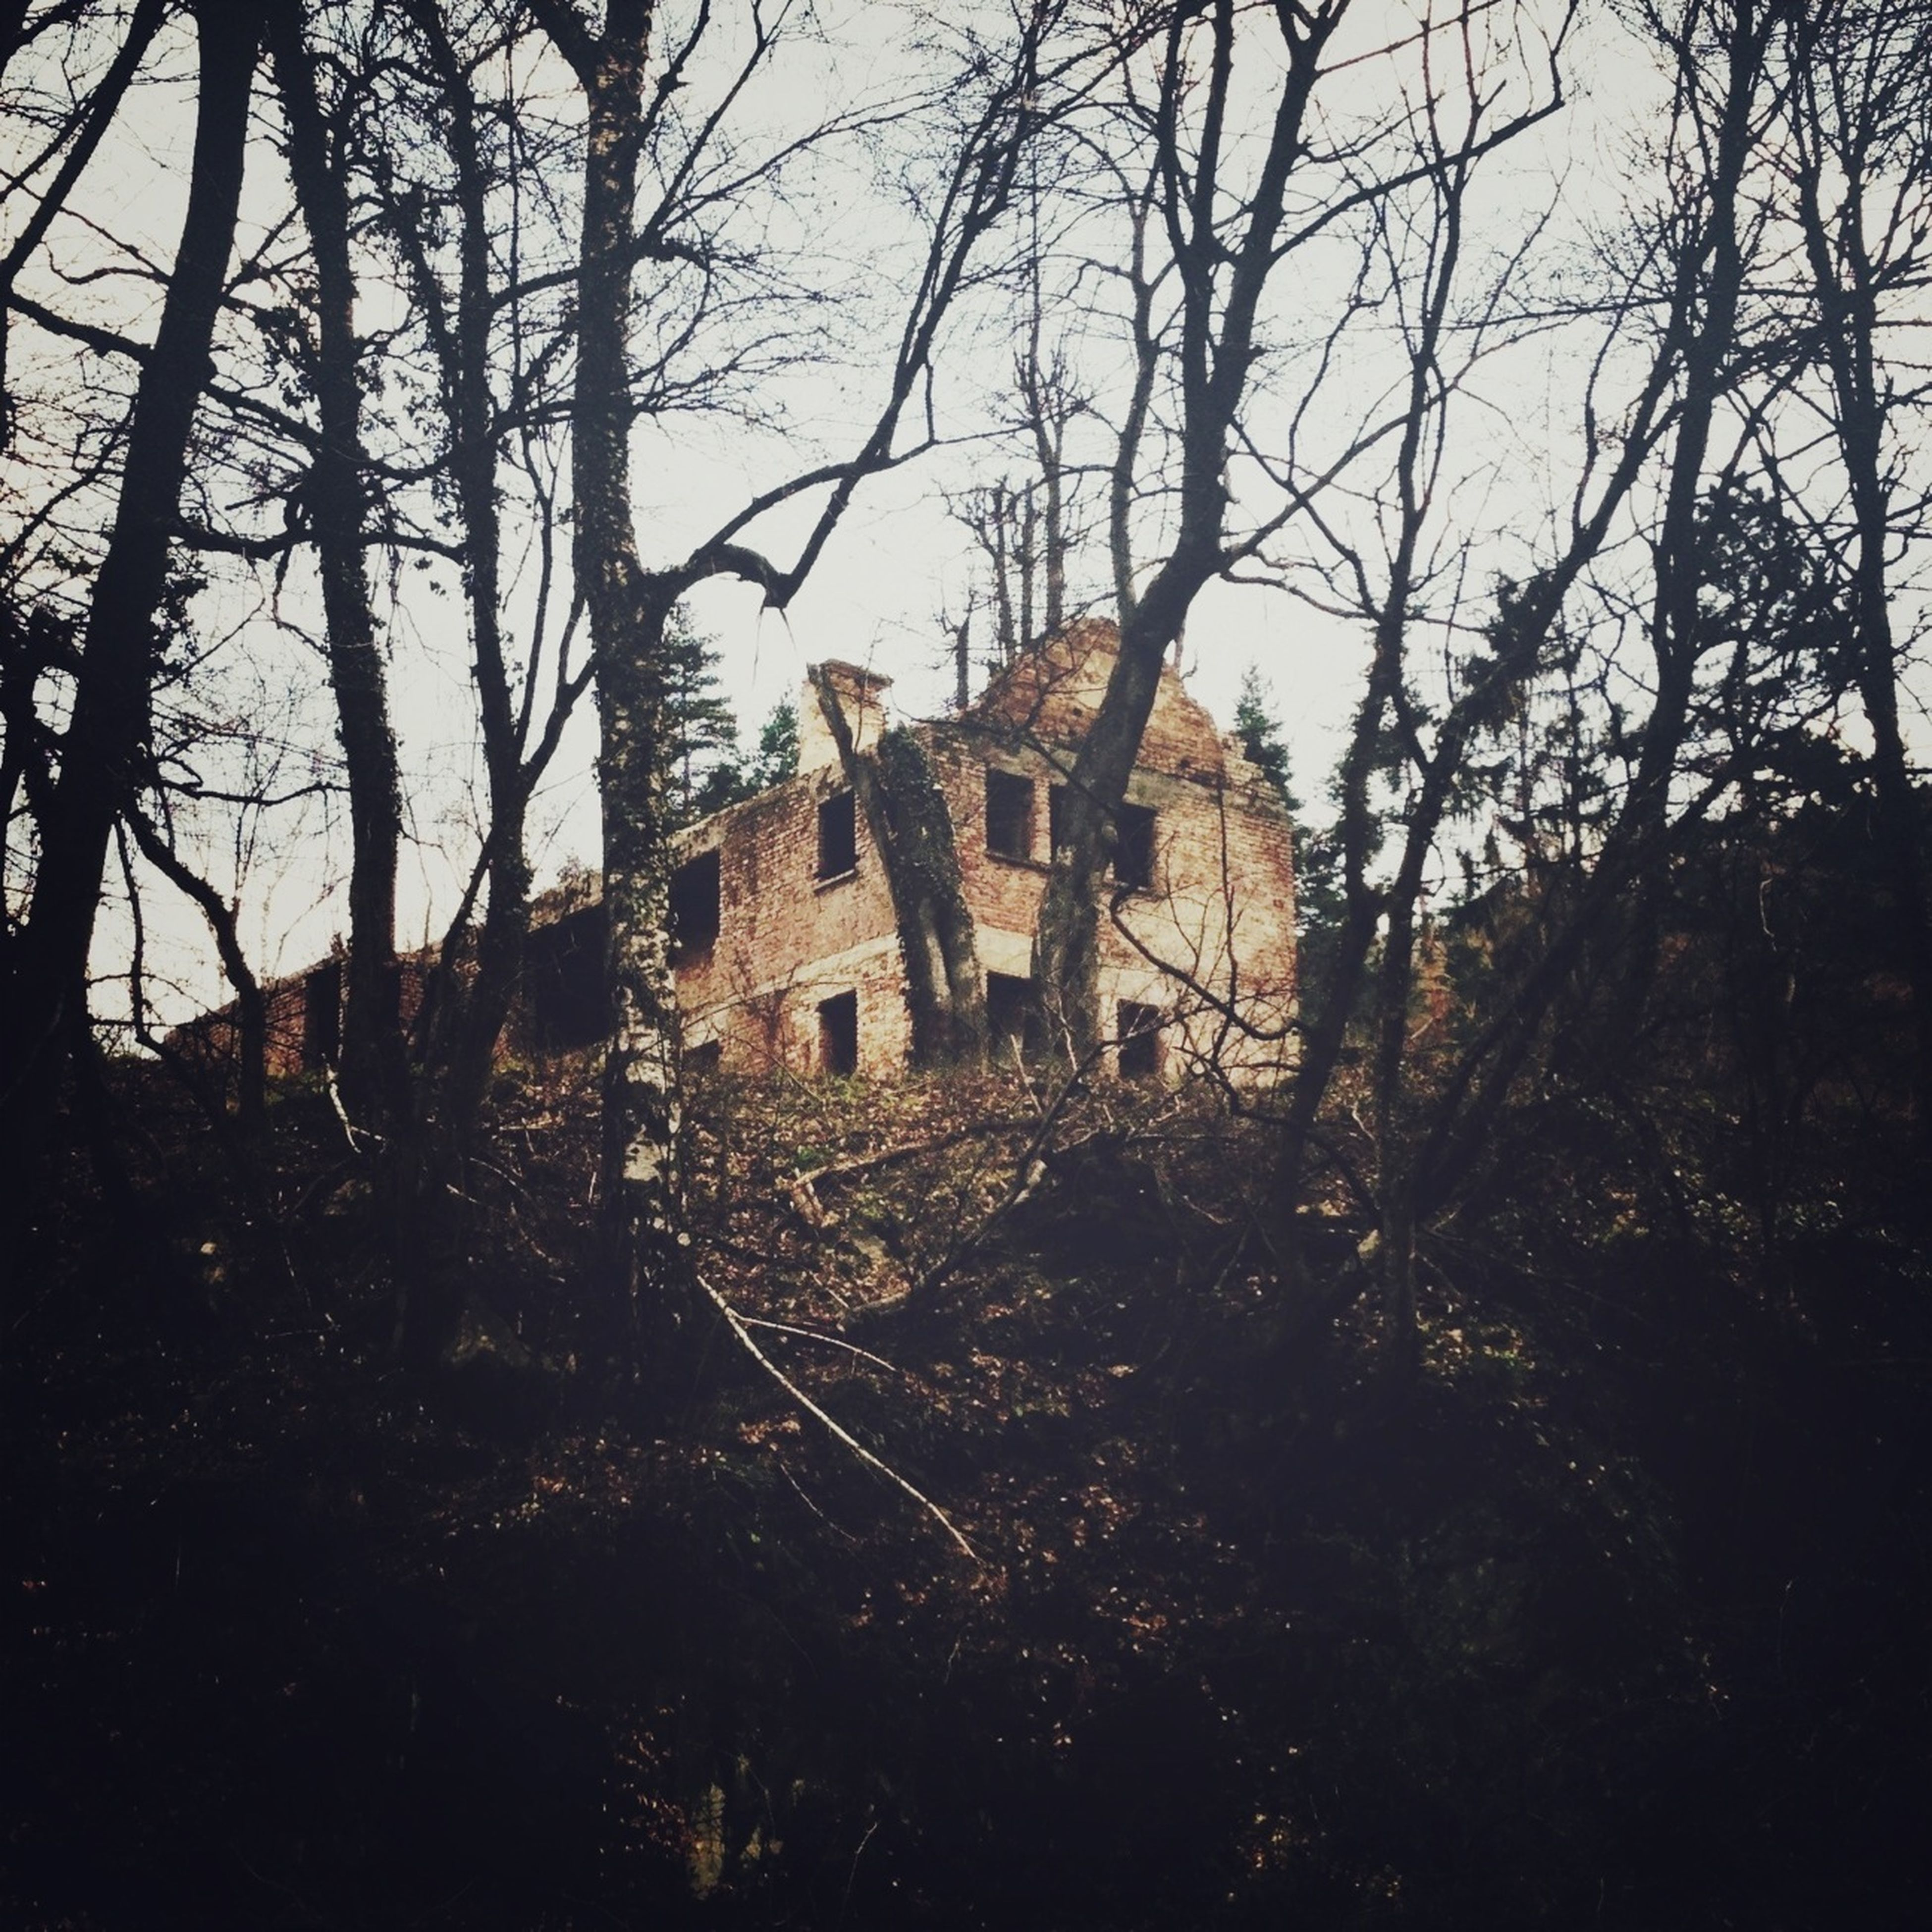 architecture, built structure, building exterior, tree, old, bare tree, sky, house, abandoned, damaged, clear sky, history, old ruin, obsolete, run-down, deterioration, branch, outdoors, no people, day